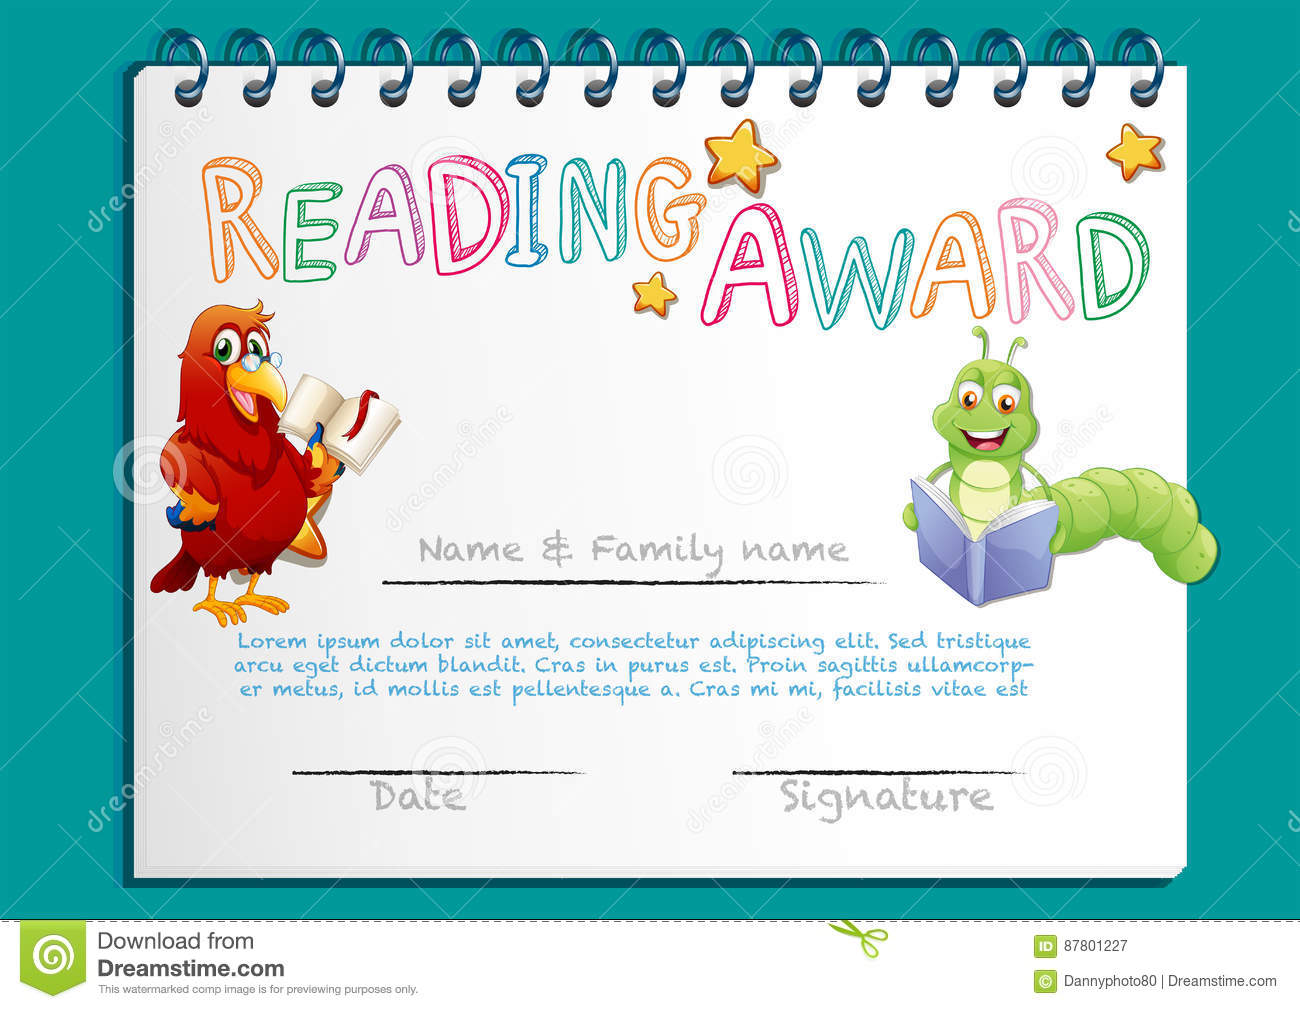 Reading award certificate template with bird reading book cartoon reading award certificate template with bird reading book cartoon vector cartoondealer 87801227 alramifo Images